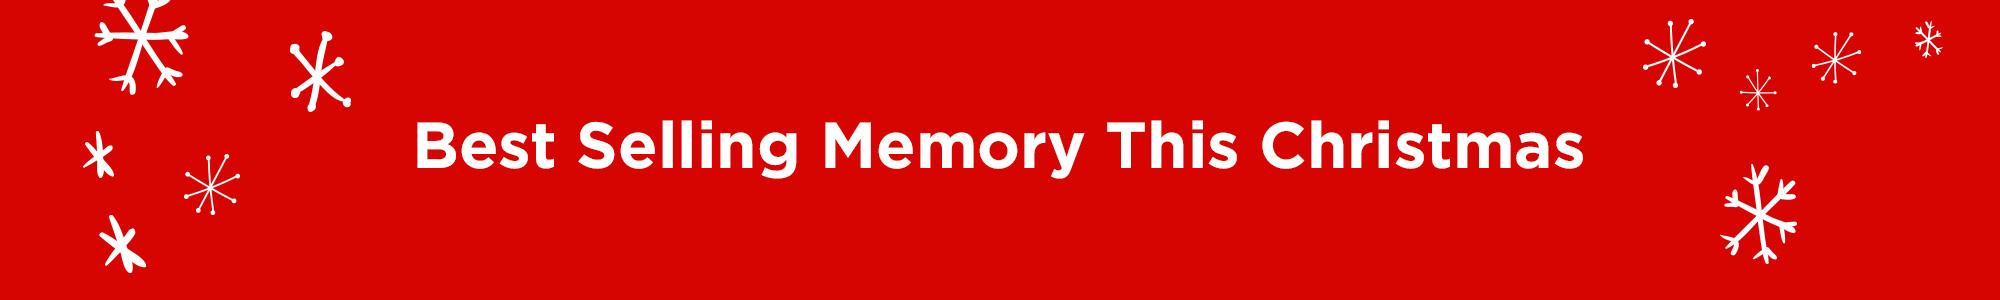 Best Selling Memory This Christmas